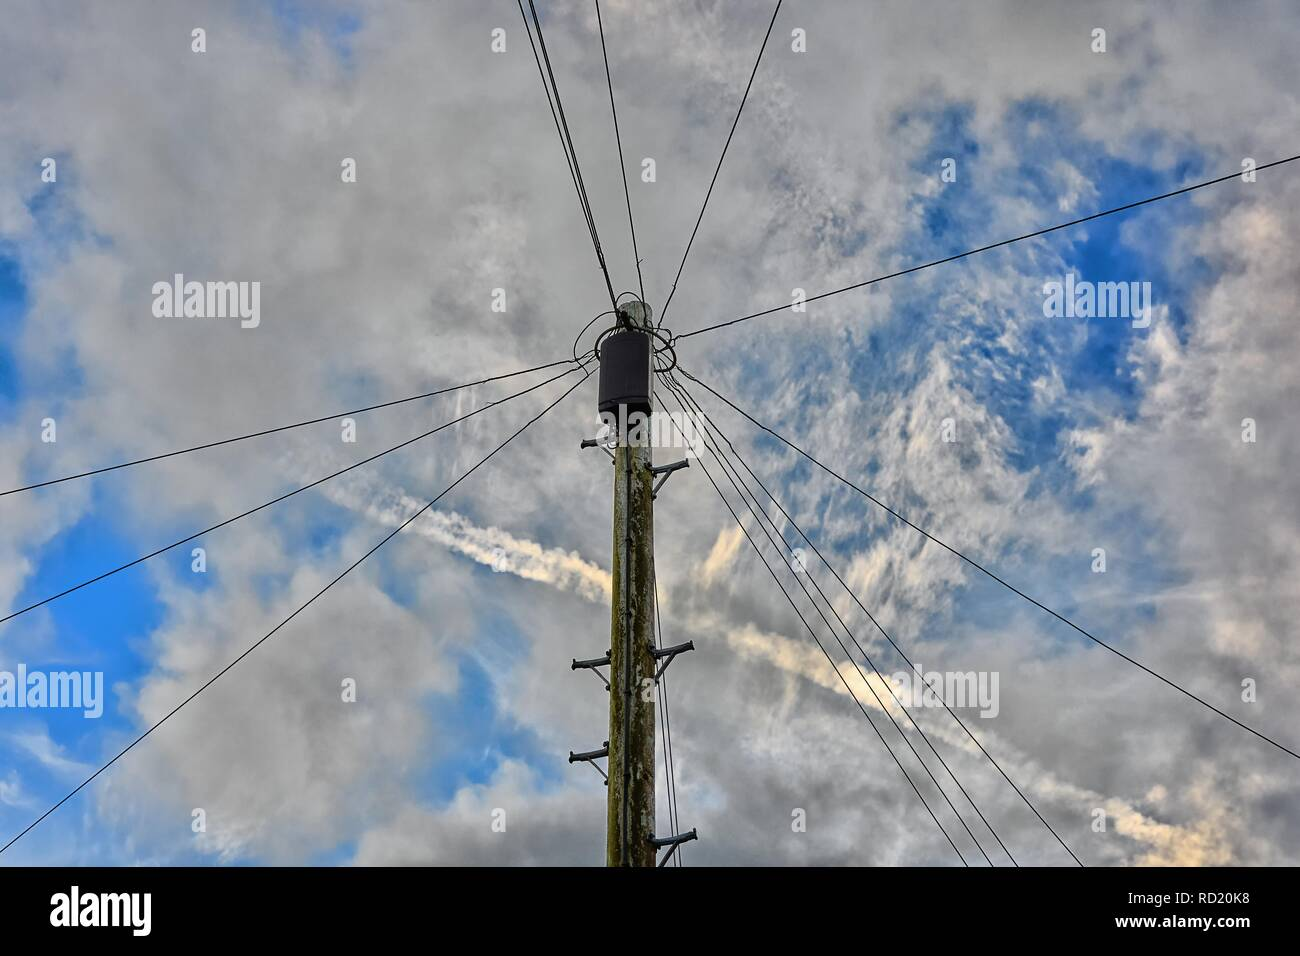 hight resolution of traditional telegraph pole with junction box and wires radiating across a partially cloudy sky with an